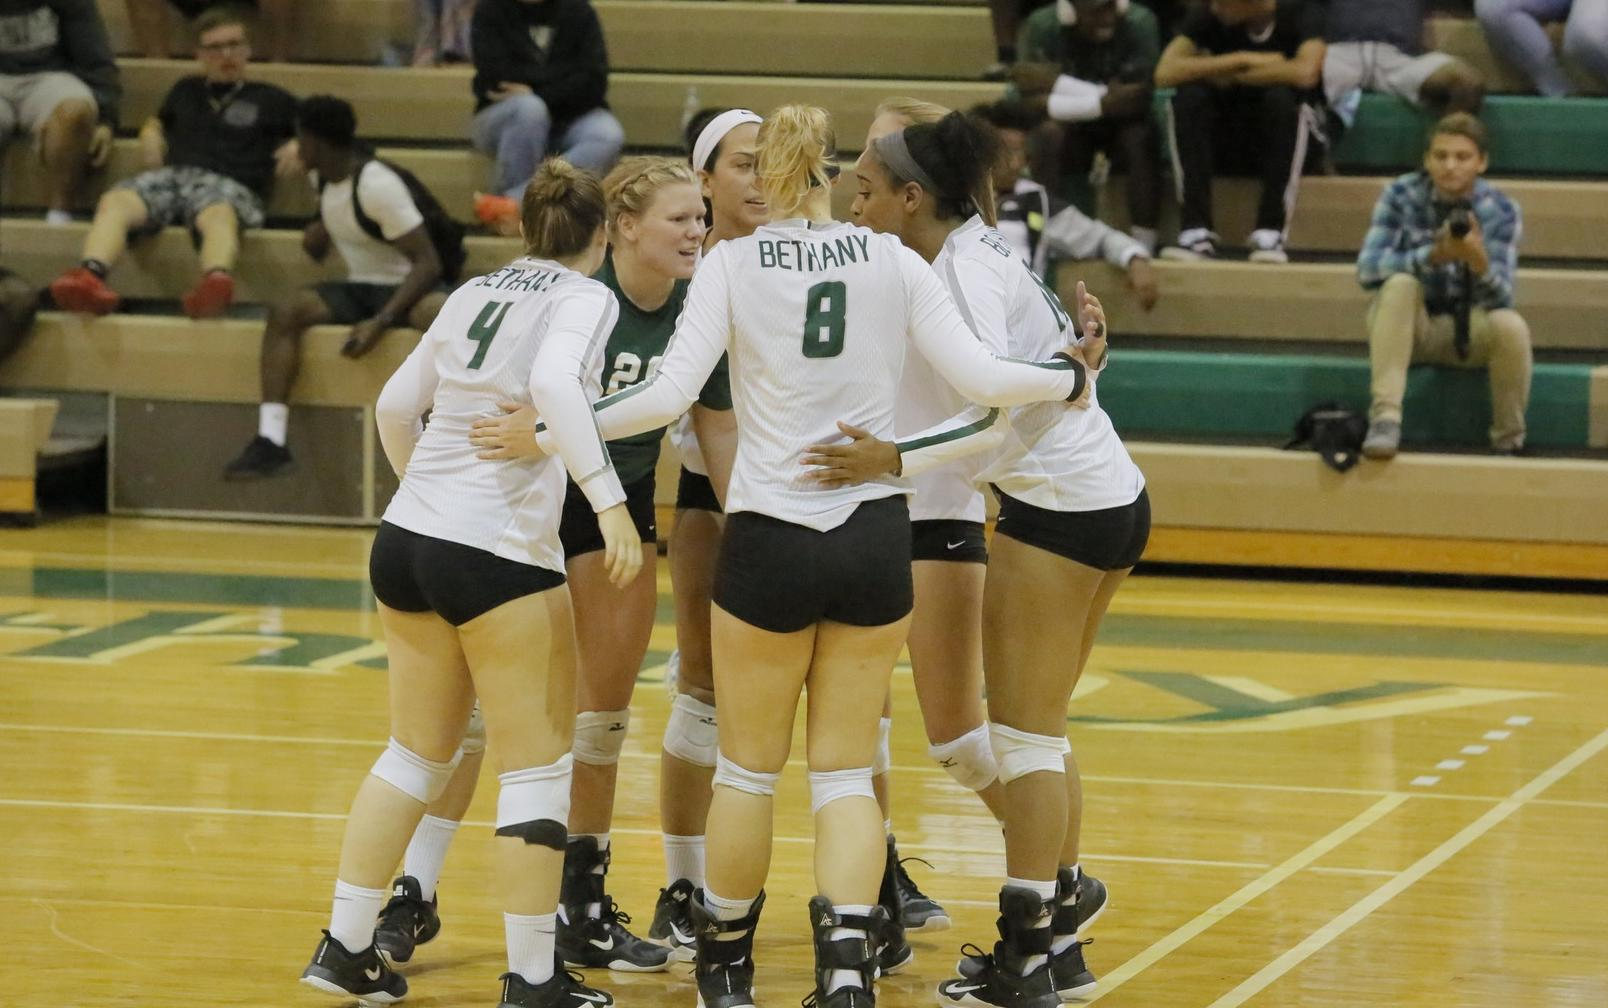 Bethany defeated at Westminster, 3-0